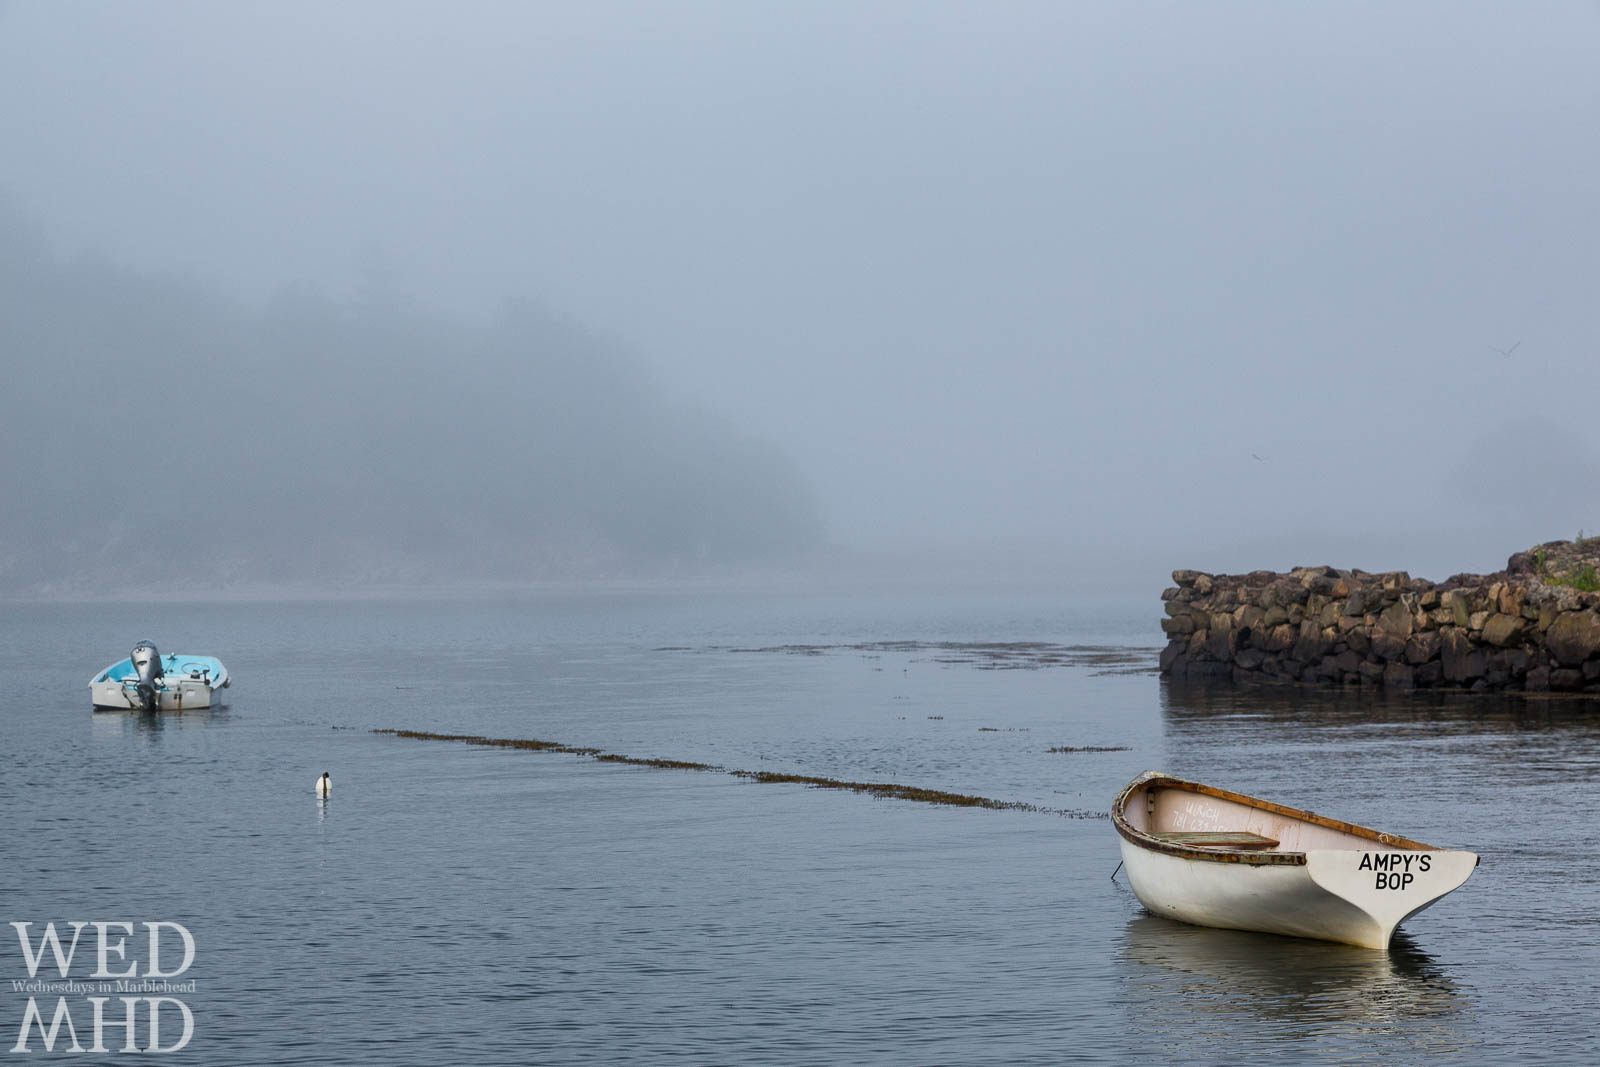 A small boat named Ampy's Bop is seen on a foggy Summer evening with Brown's Island barely visible in the distance